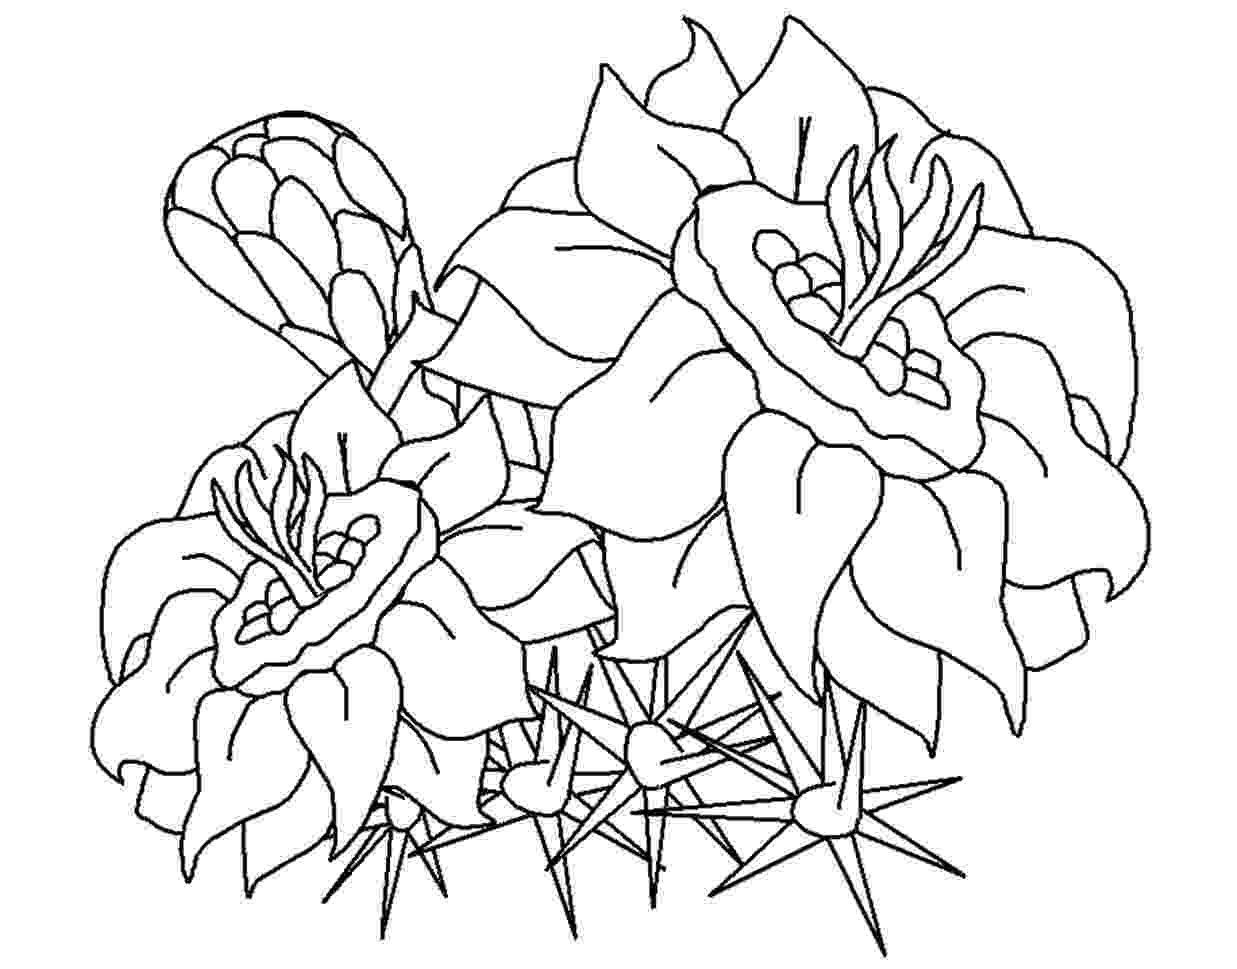 free printable flowers to color free printable flower coloring pages for kids best to free flowers color printable